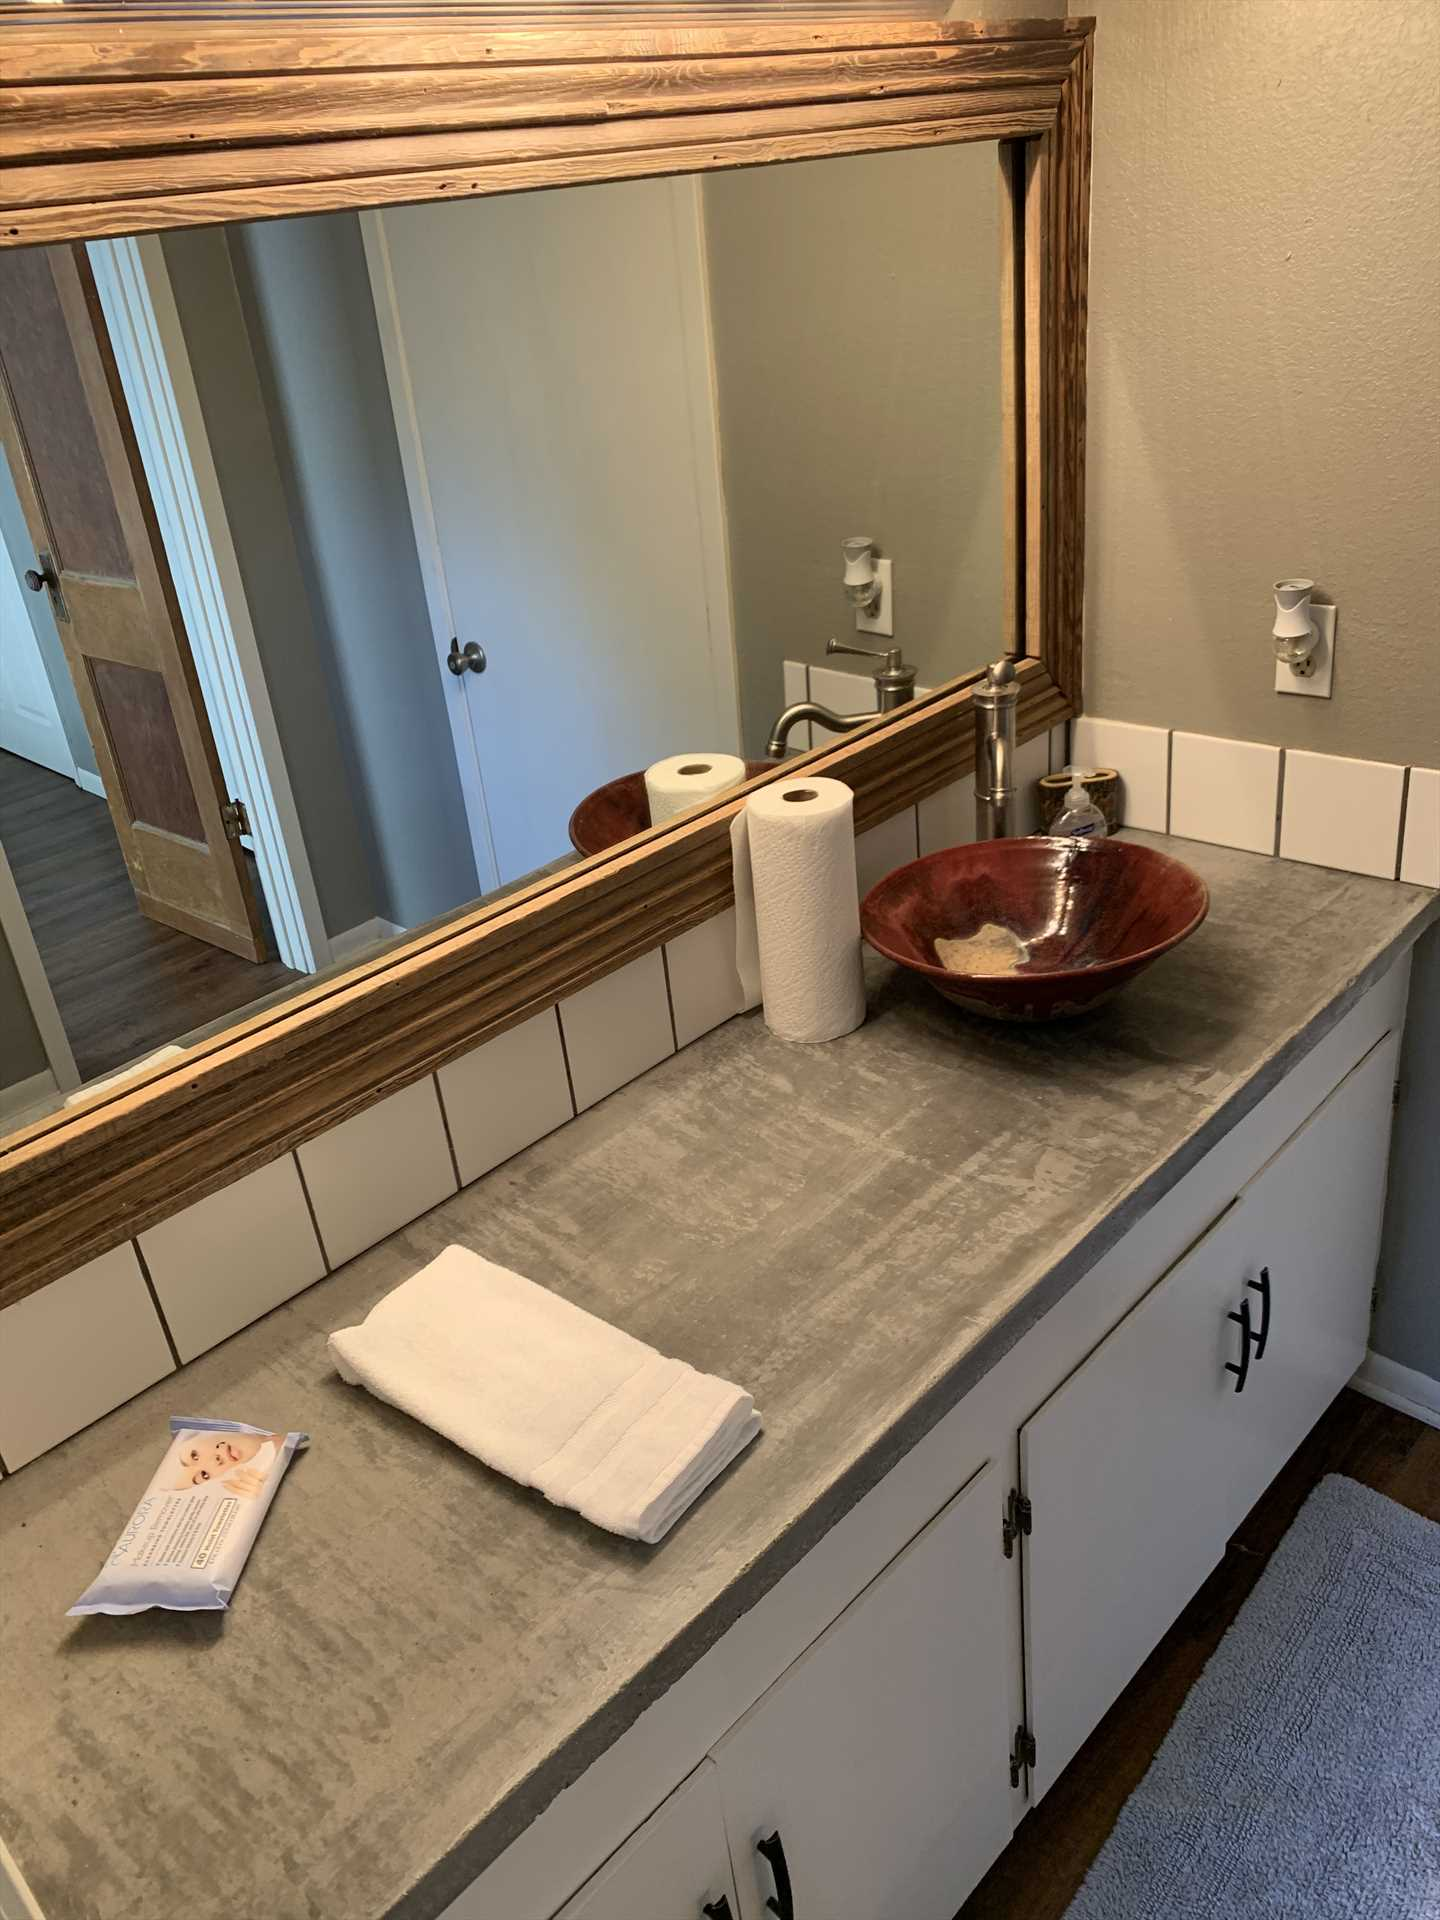 The master bath features a tub and shower combo, a big bowl vanity, and plenty of counter space for your toiletries.